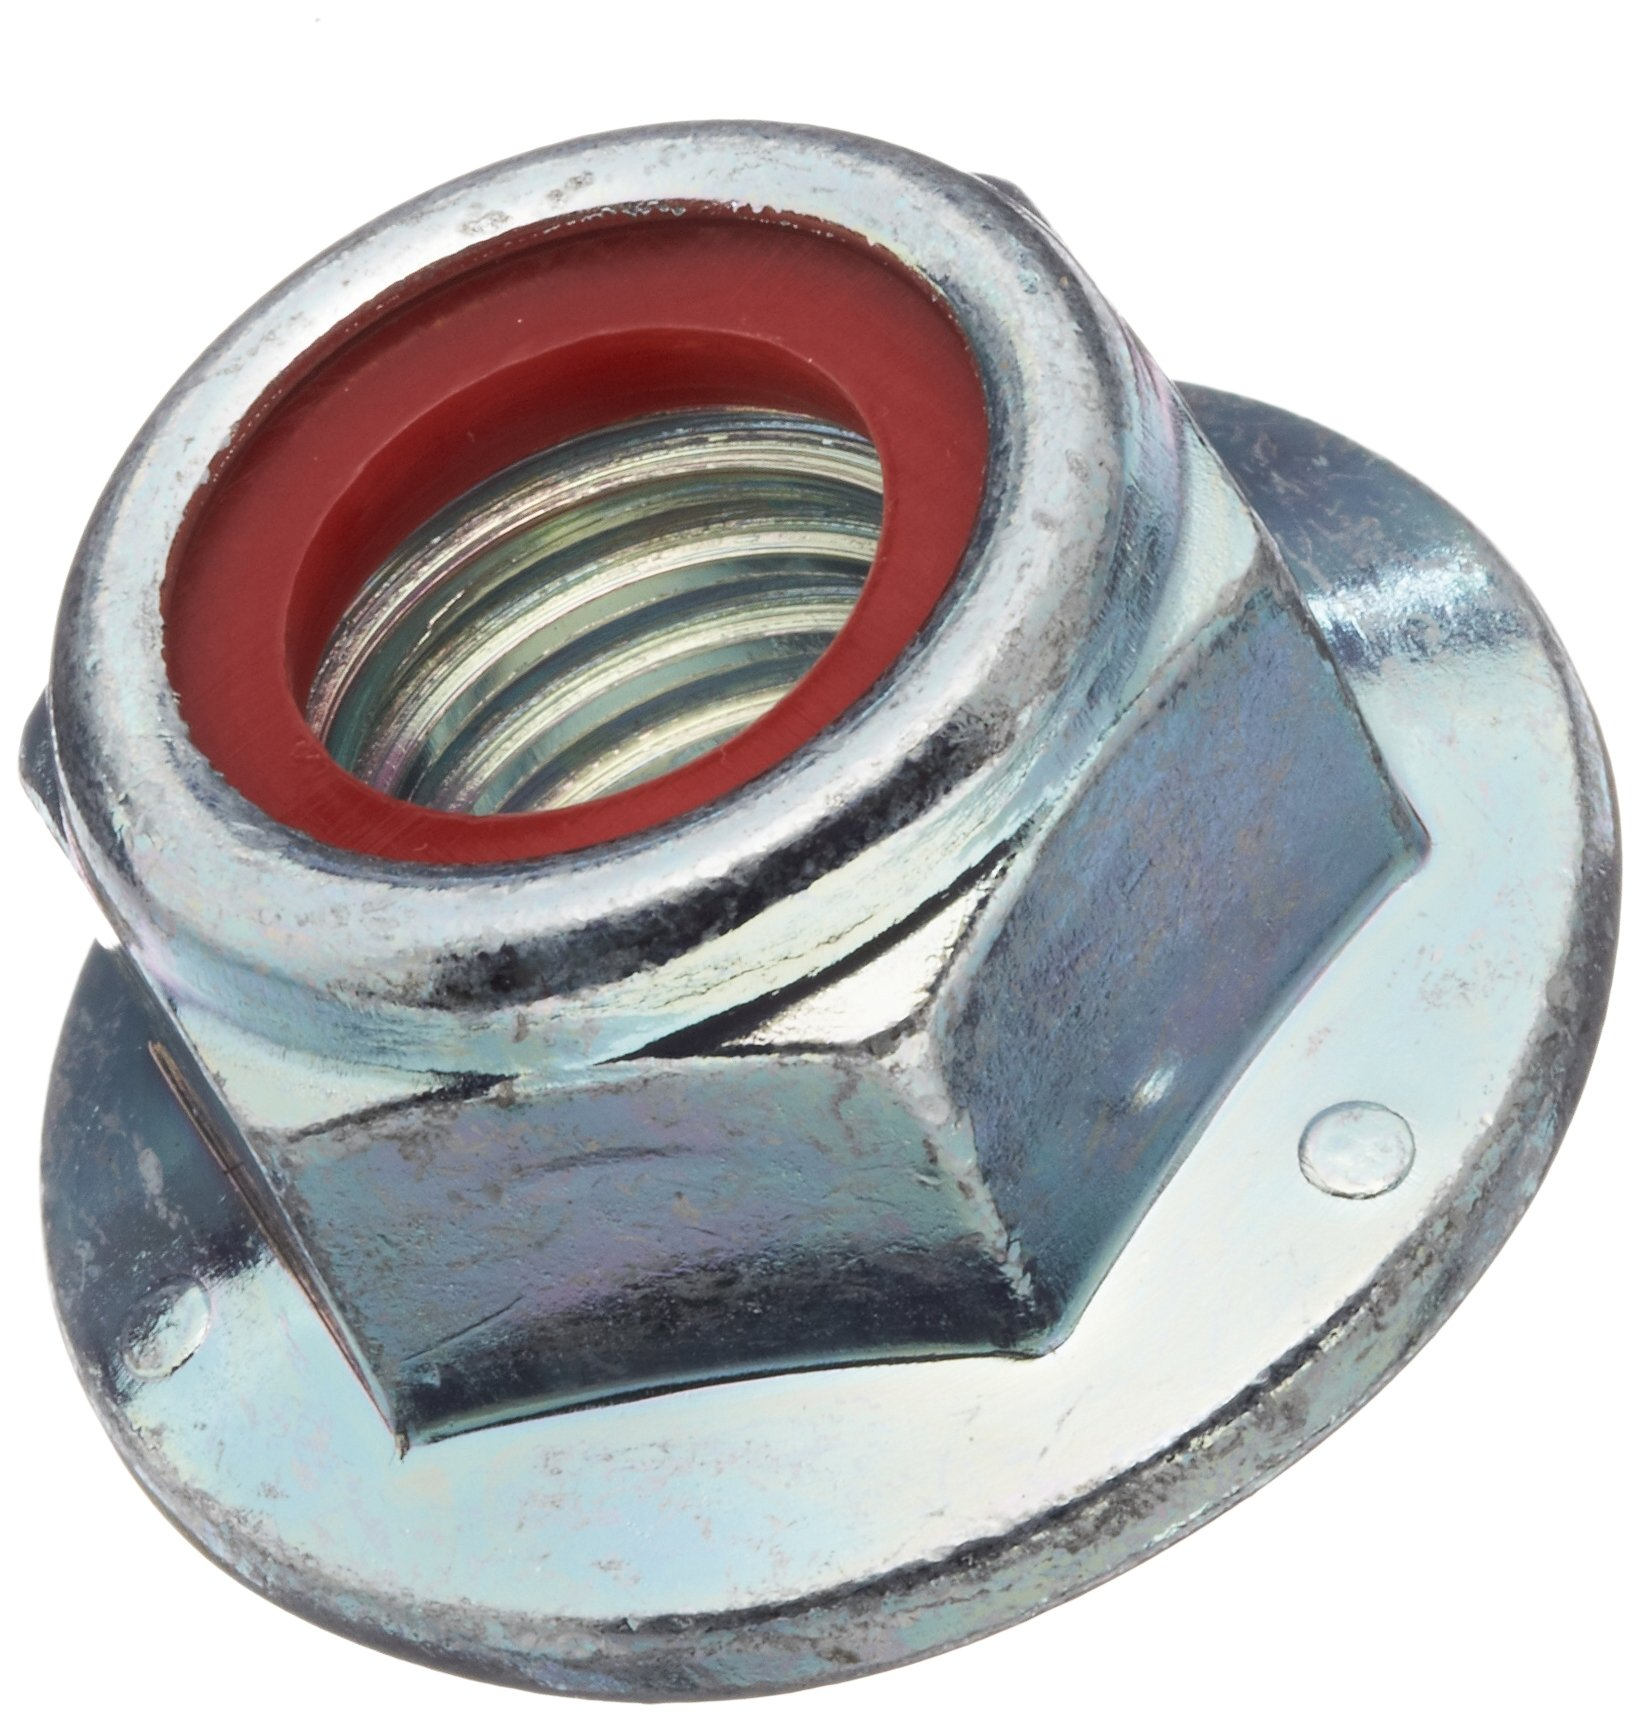 Class 2B 5//16-18 Threads Right Hand Threads Pack of 10 Zinc Plated Finish Steel Wing Nut Grade 2 Self-Locking Nylon Insert